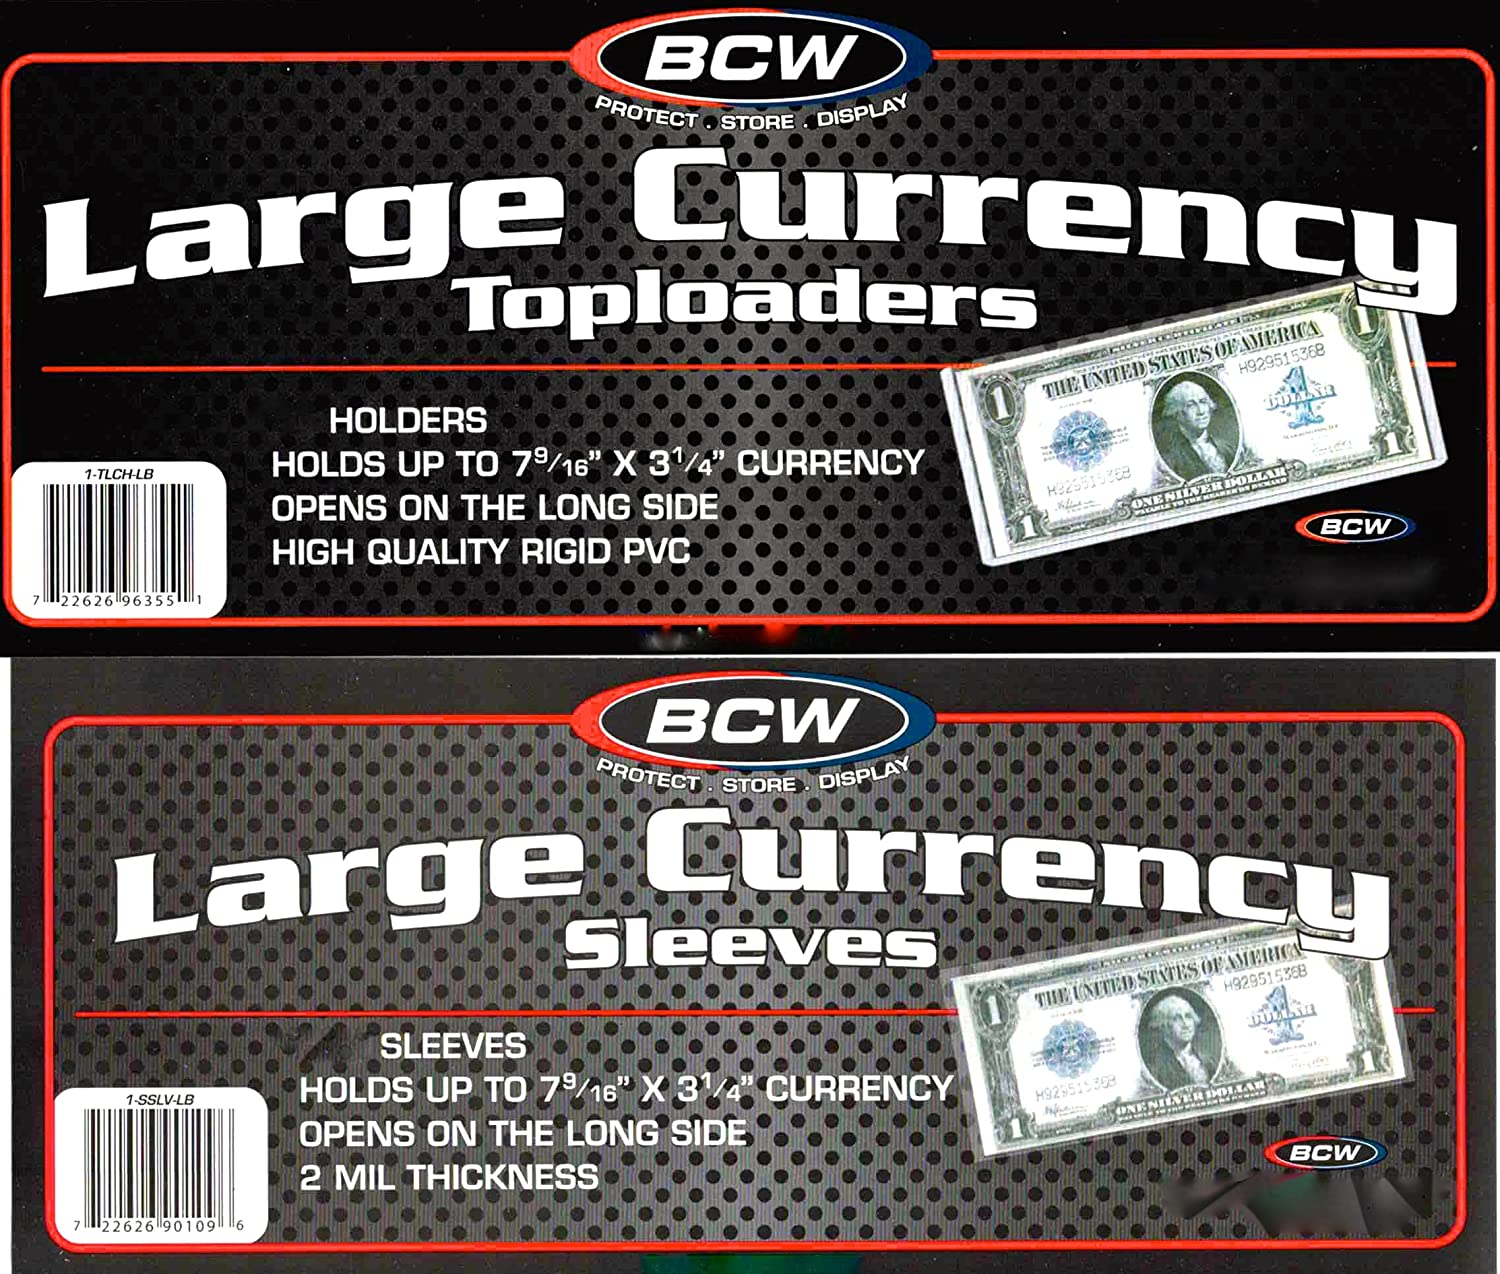 10 Top Load Currency Rigid Holders for Large Bills Including 10 Large Bill Sleeves